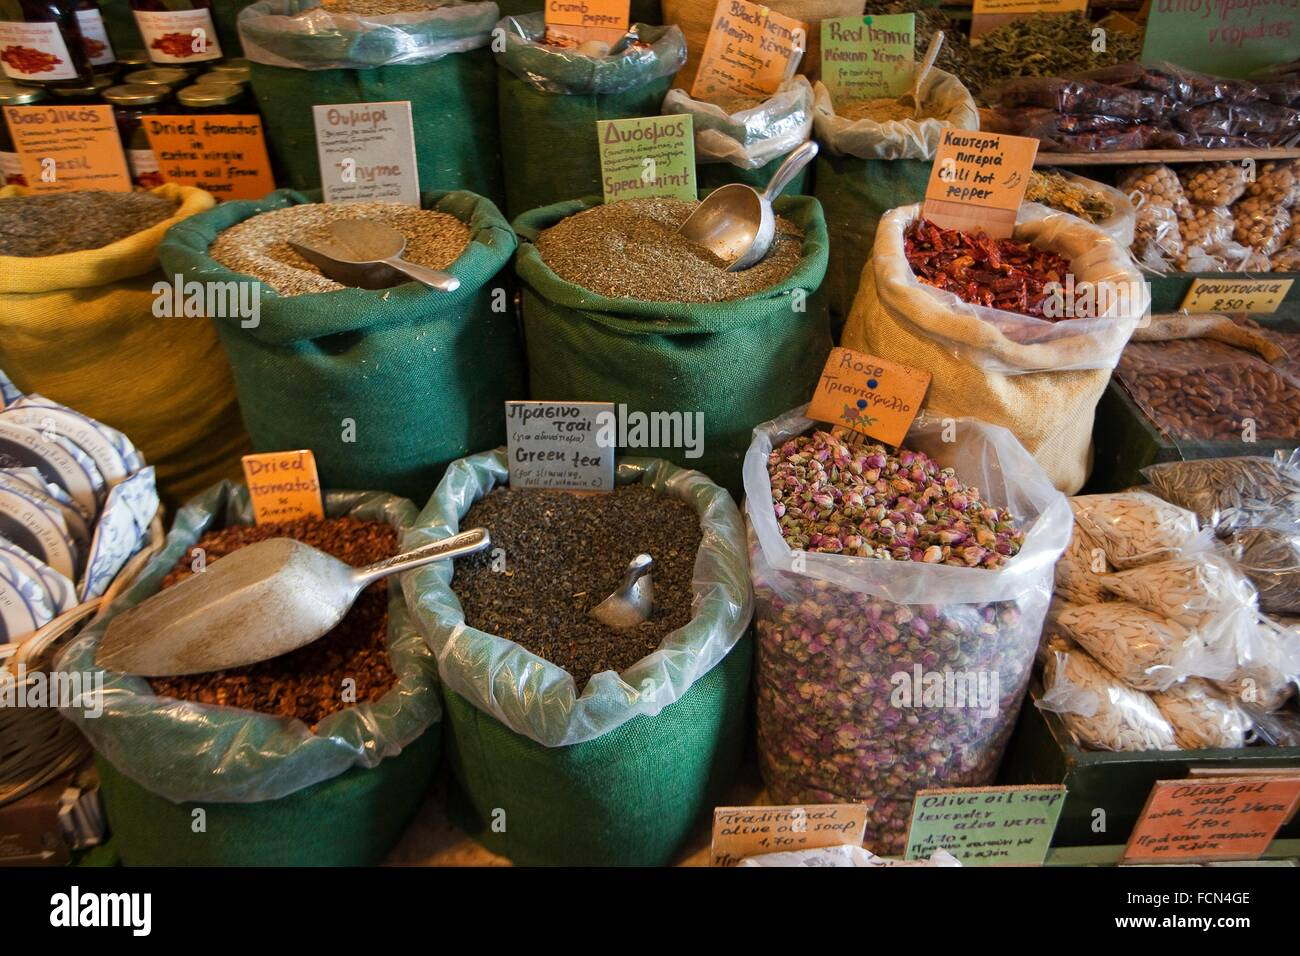 Different legumes in sacks at the market, Naxos, Cyclades Islands, Greek Islands, Greece, Europe. - Stock Image